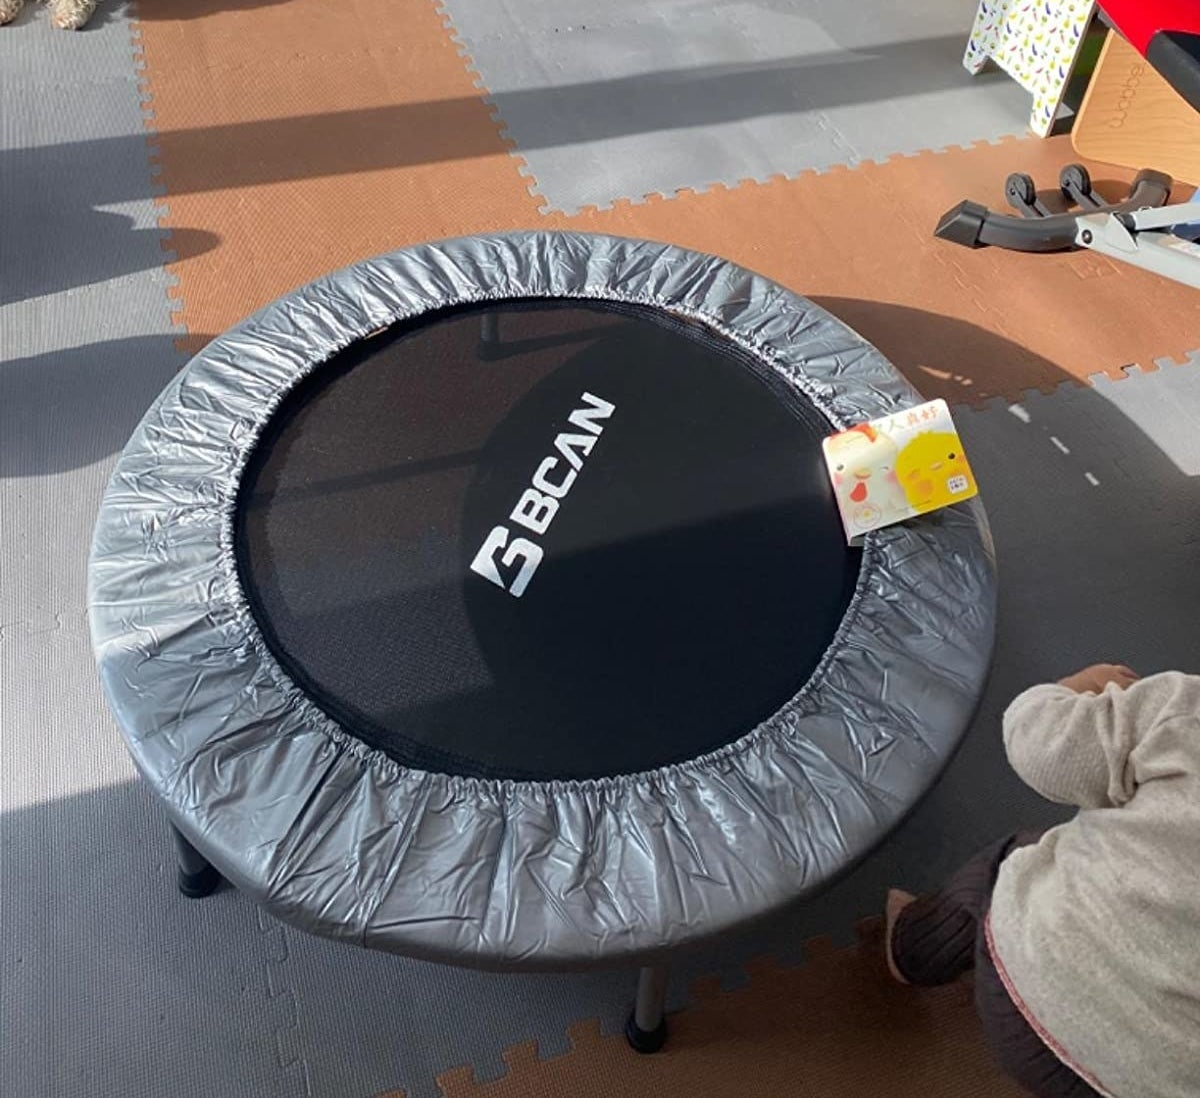 Reviewer pic of the circular trampoline in black with a silver cover around the outside